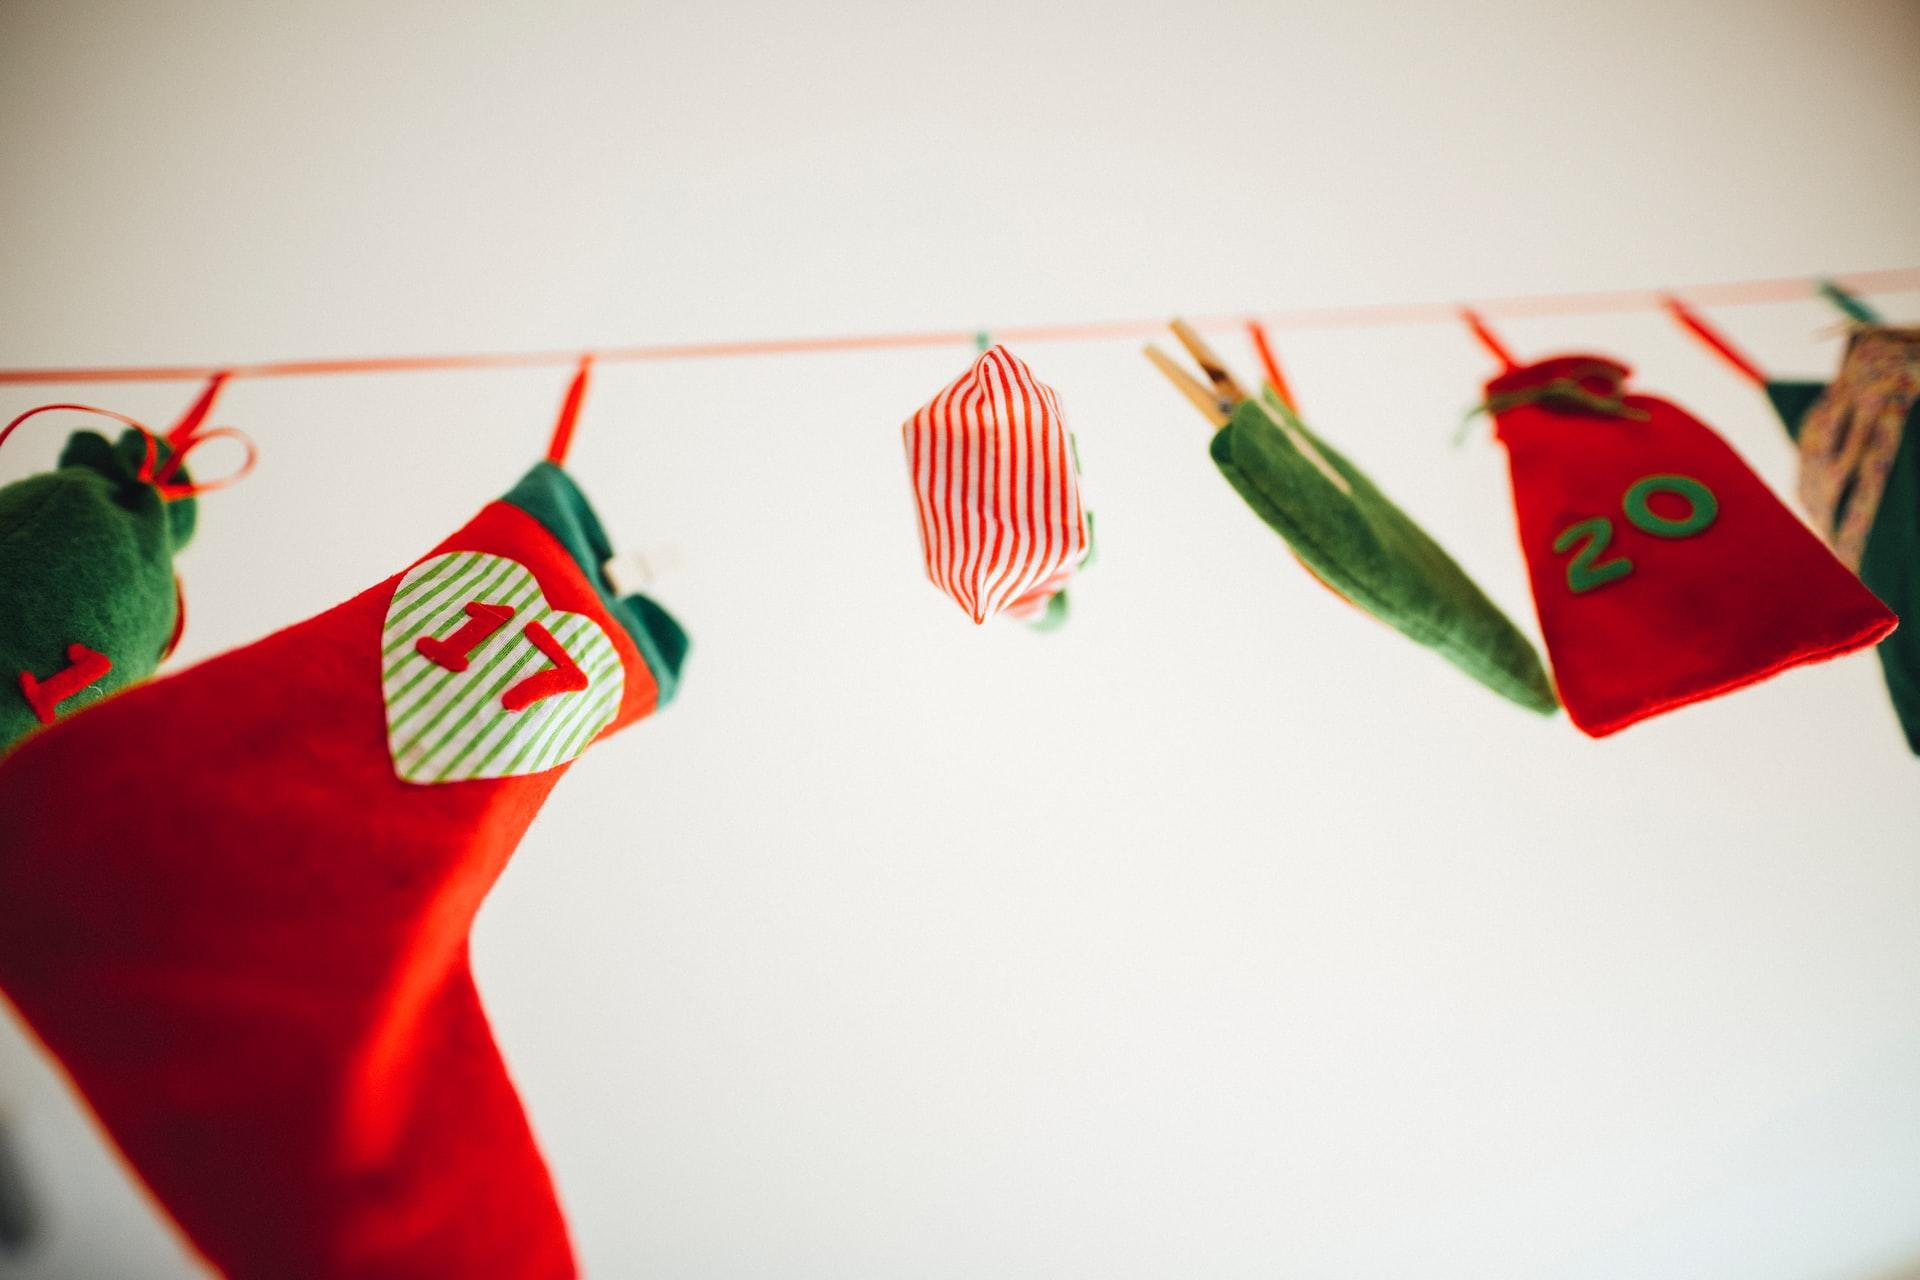 Photo of kid's advent calendar by Markus Spiske on Unsplash